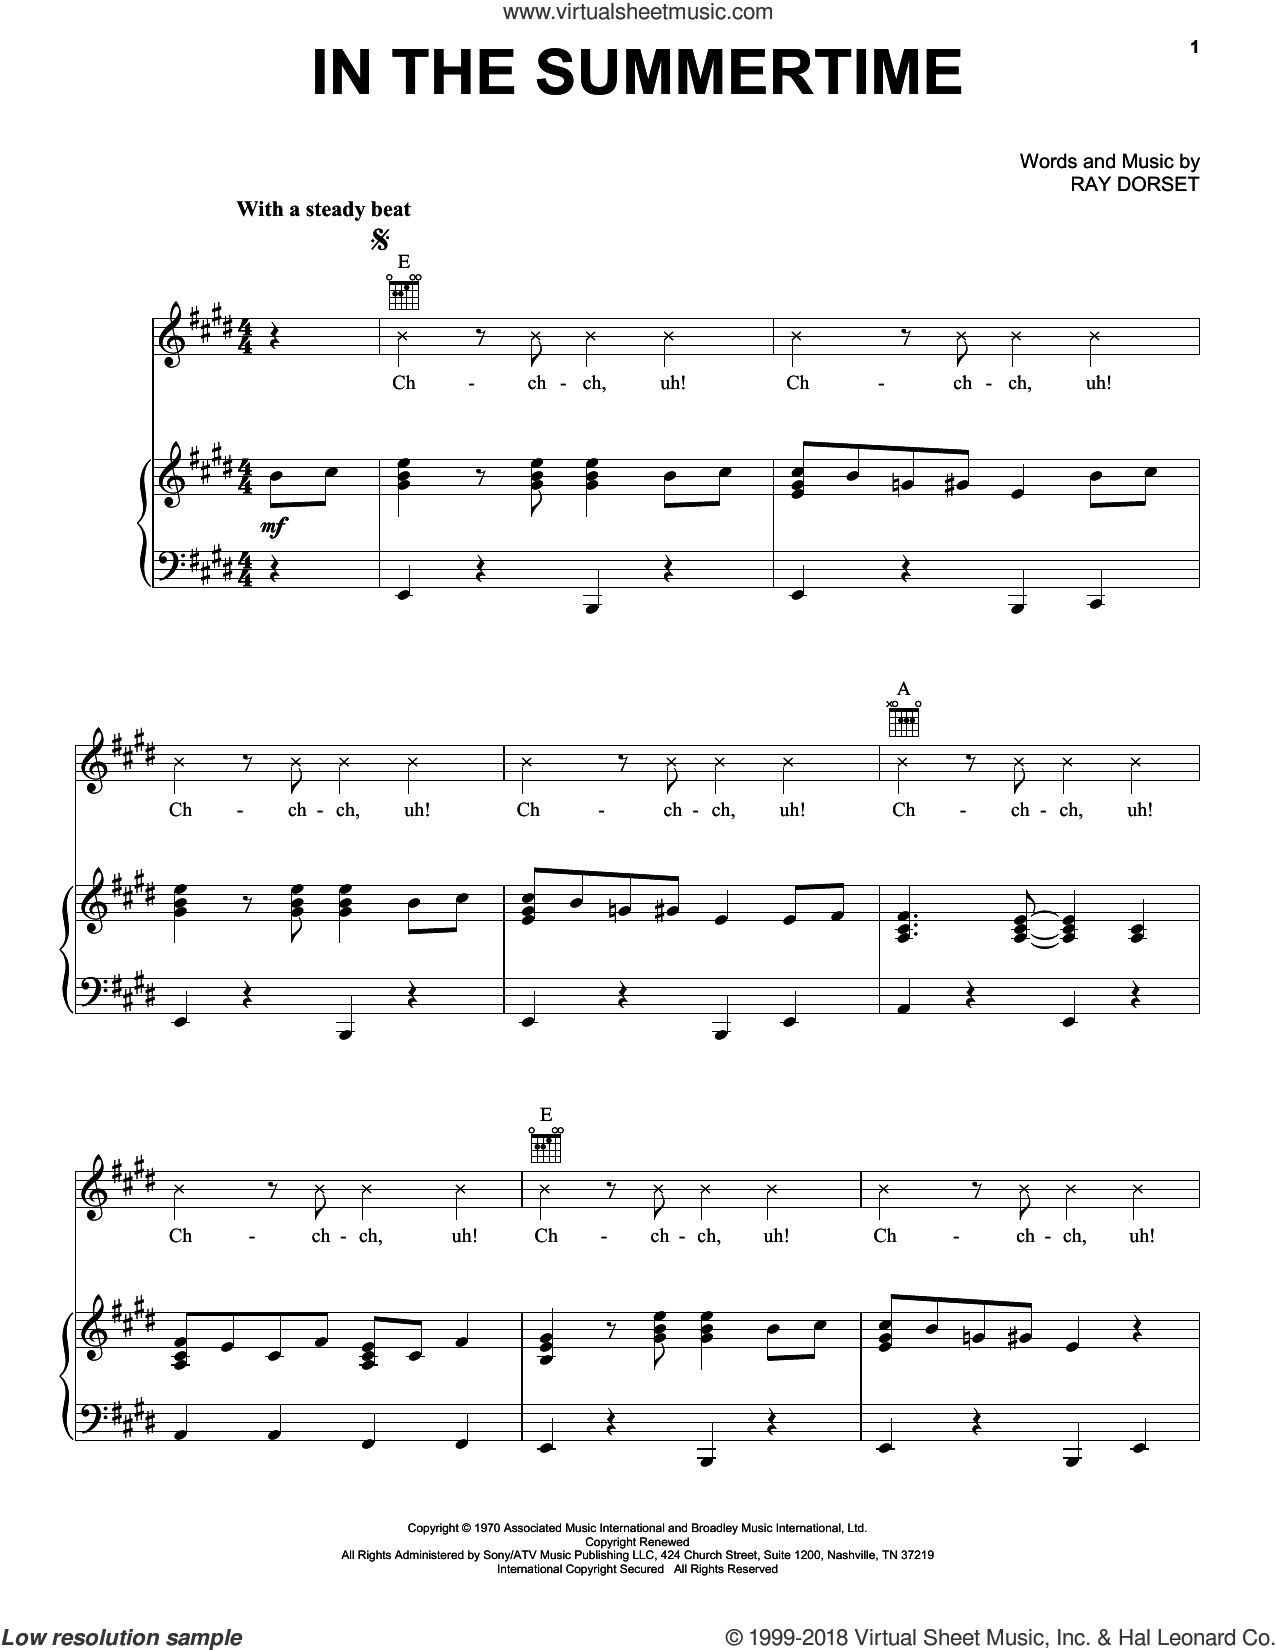 In The Summertime sheet music for voice, piano or guitar by Ray Dorset, Mungo Jerry and Shaggy, intermediate skill level